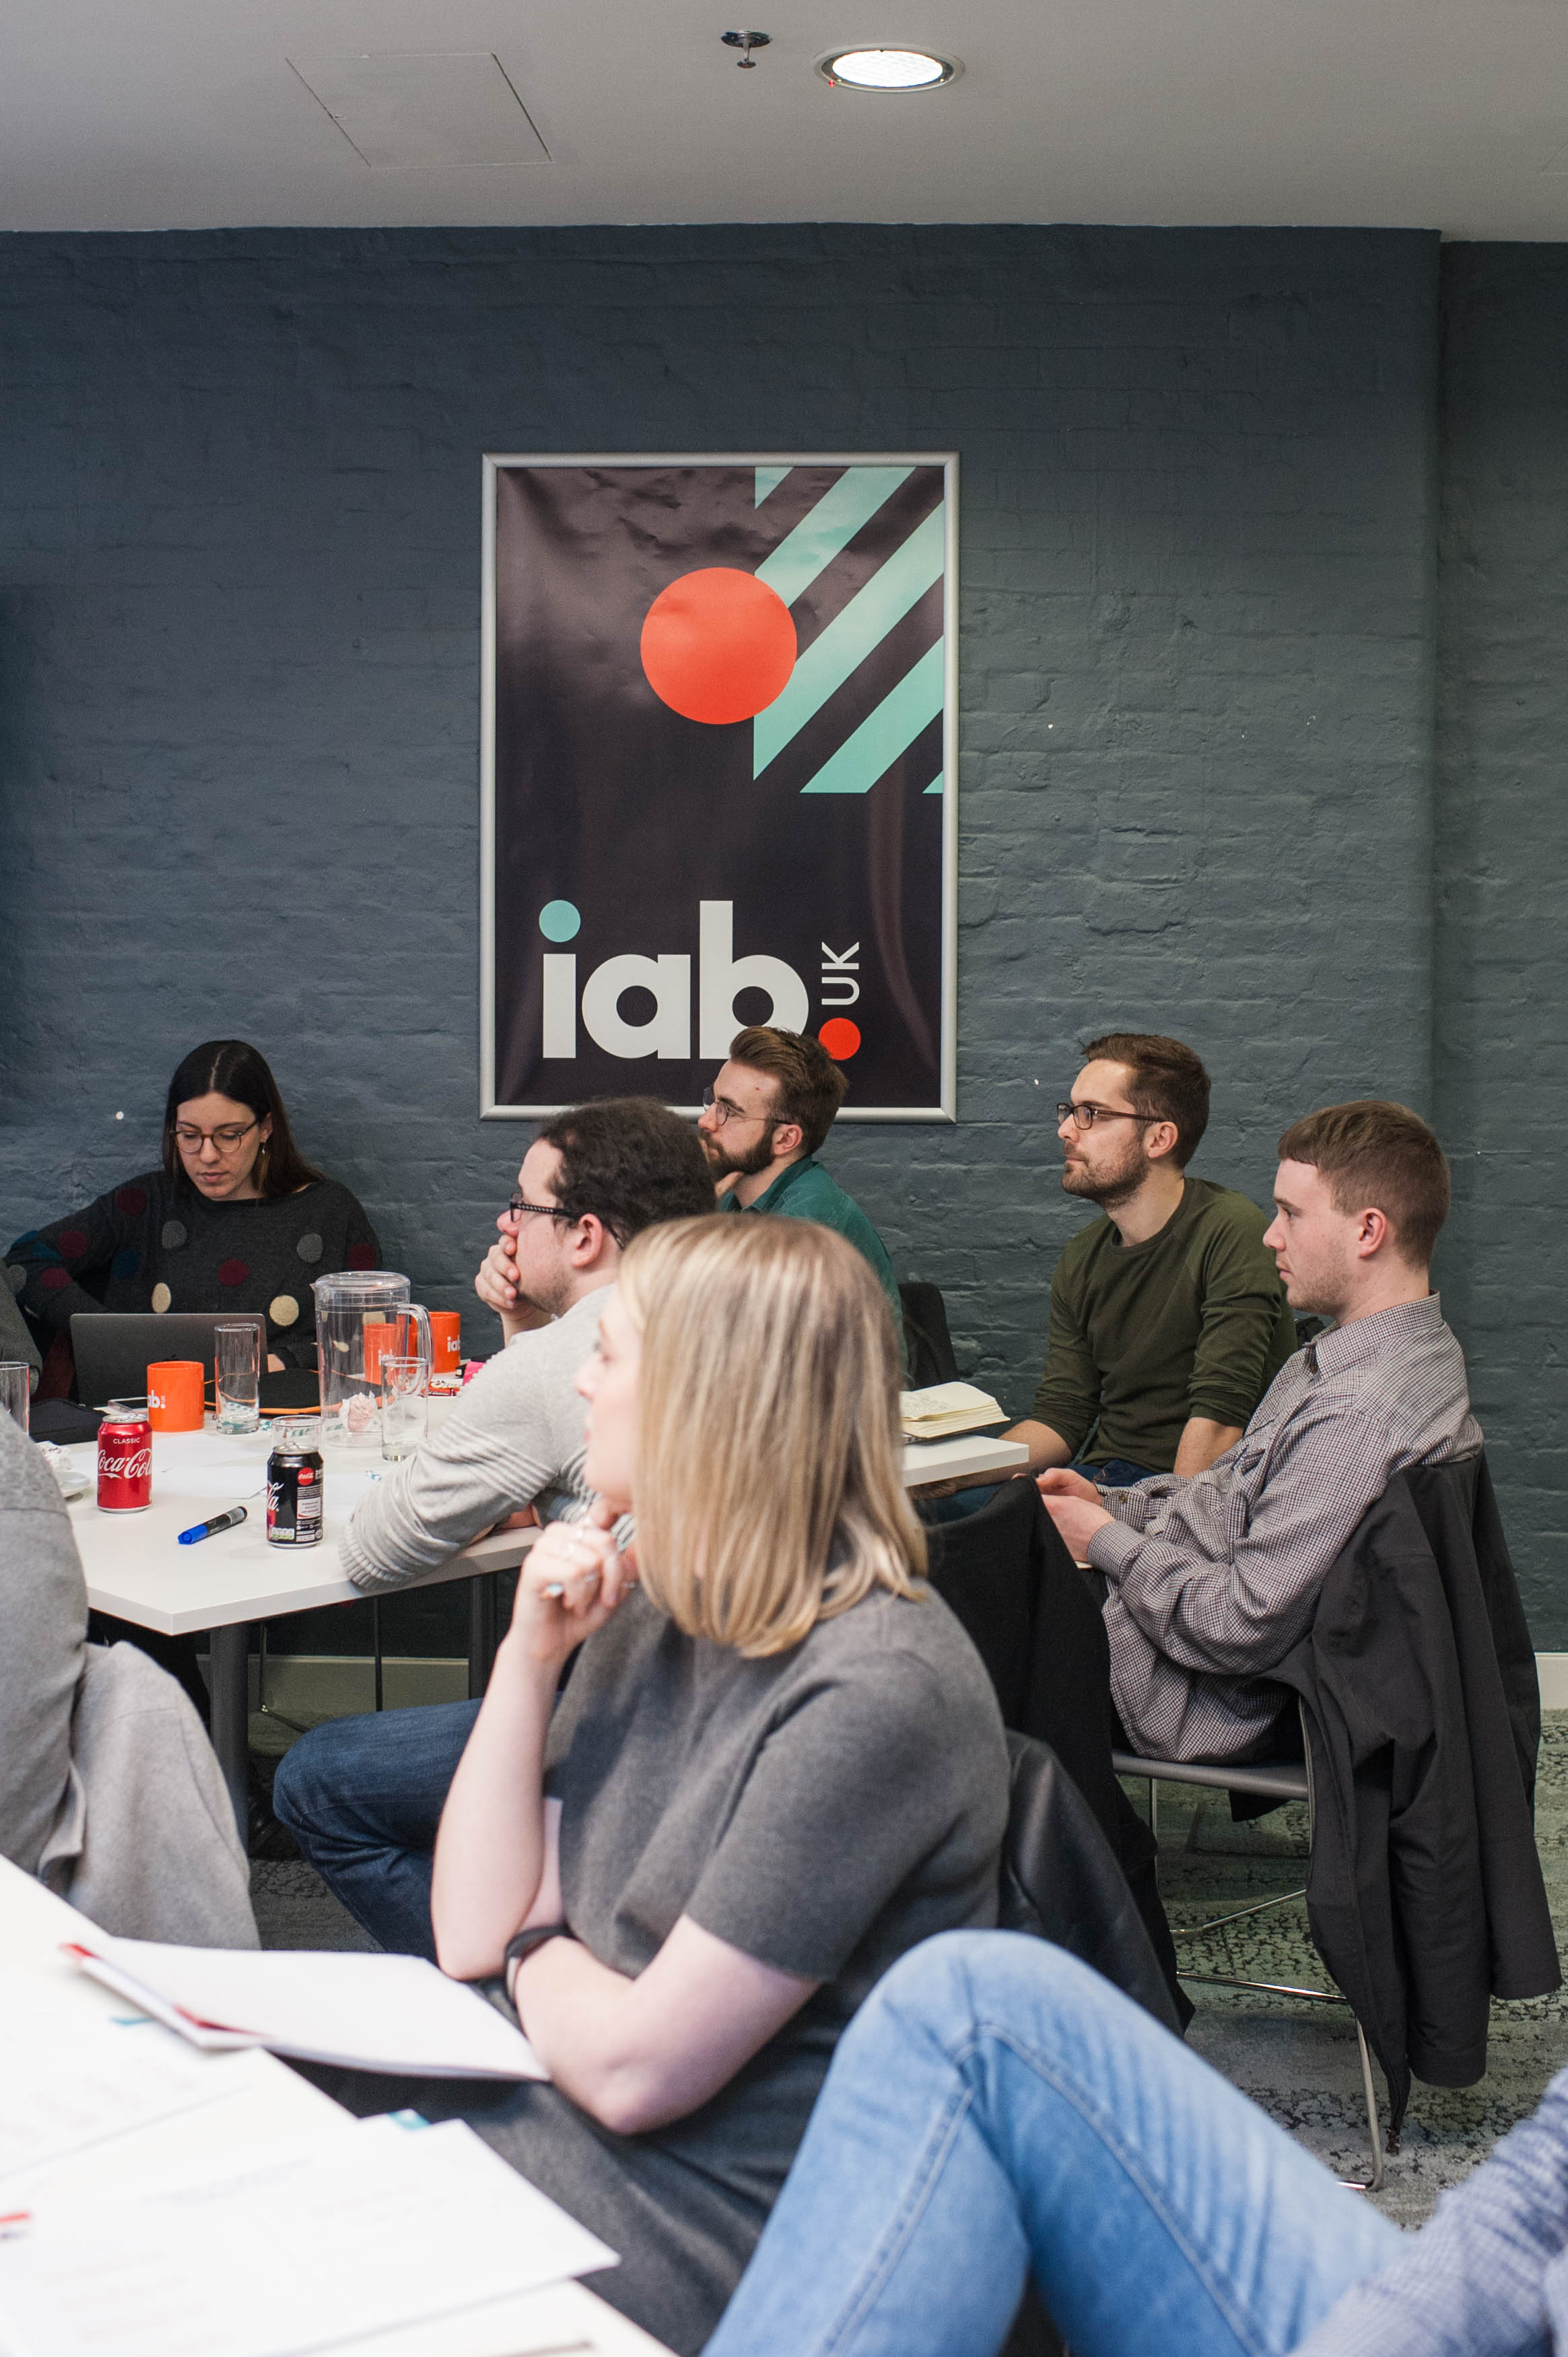 IAB Uk_Incidental Shots_SM (258 of 312).jpg